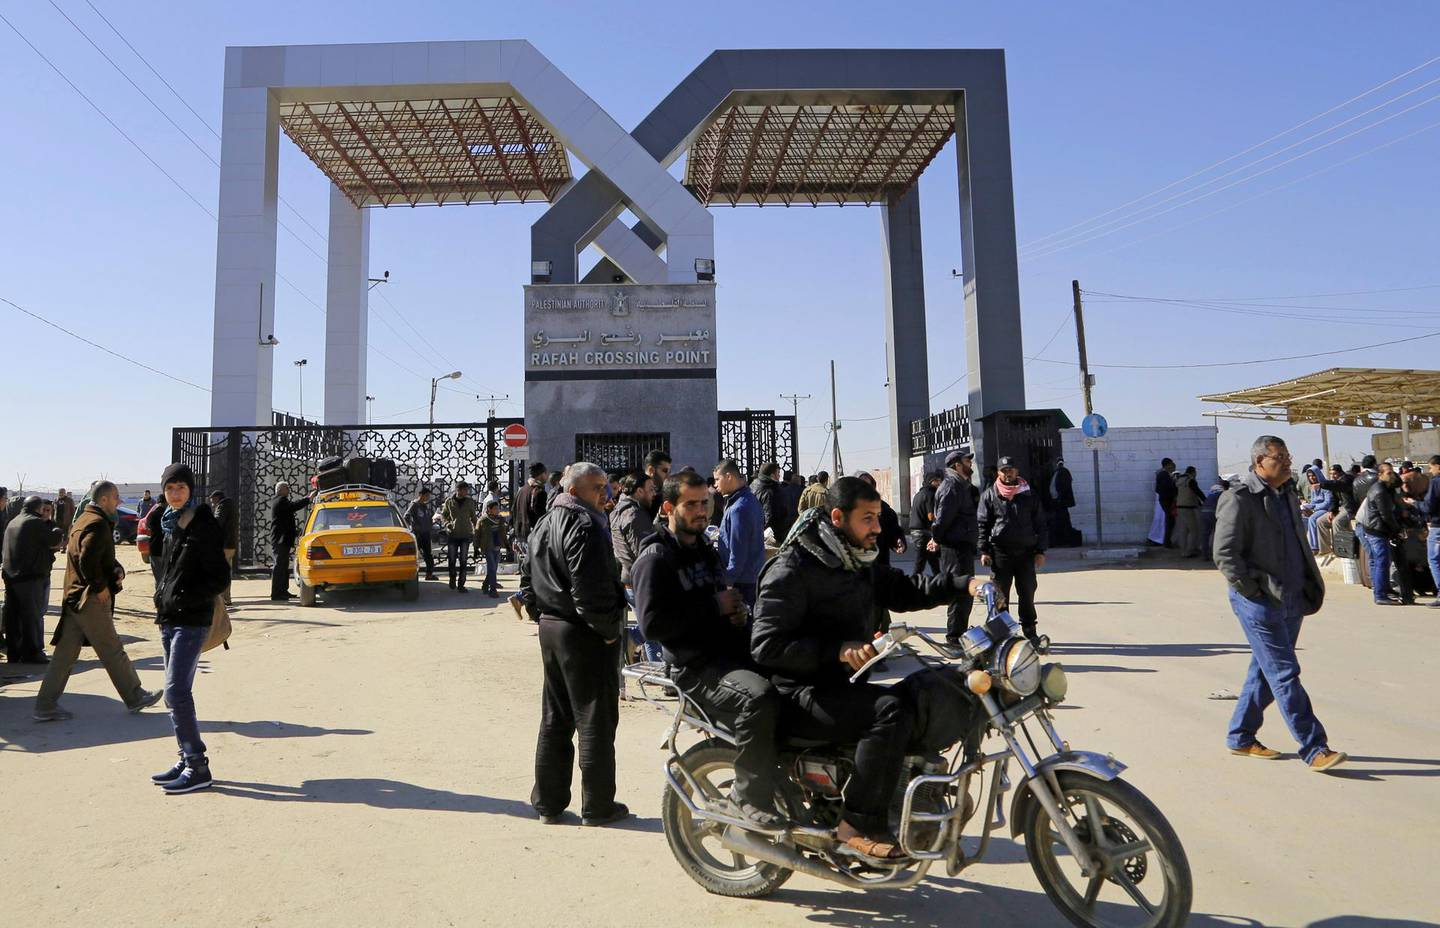 FILE - In this Tuesday, Jan. 20, 2015 file photo, Palestinians wait to cross the border to the Egyptian side at the Rafah crossing, in the southern Gaza Strip.Egypt's President Abdel Fatah el-Sissi says he has ordered the Rafah crossing point with Gaza strip be opened for the whole Muslim holy month of Ramadan, the longest time since Hamas took over the territory in 2007.  (AP Photo/Adel Hana, File)